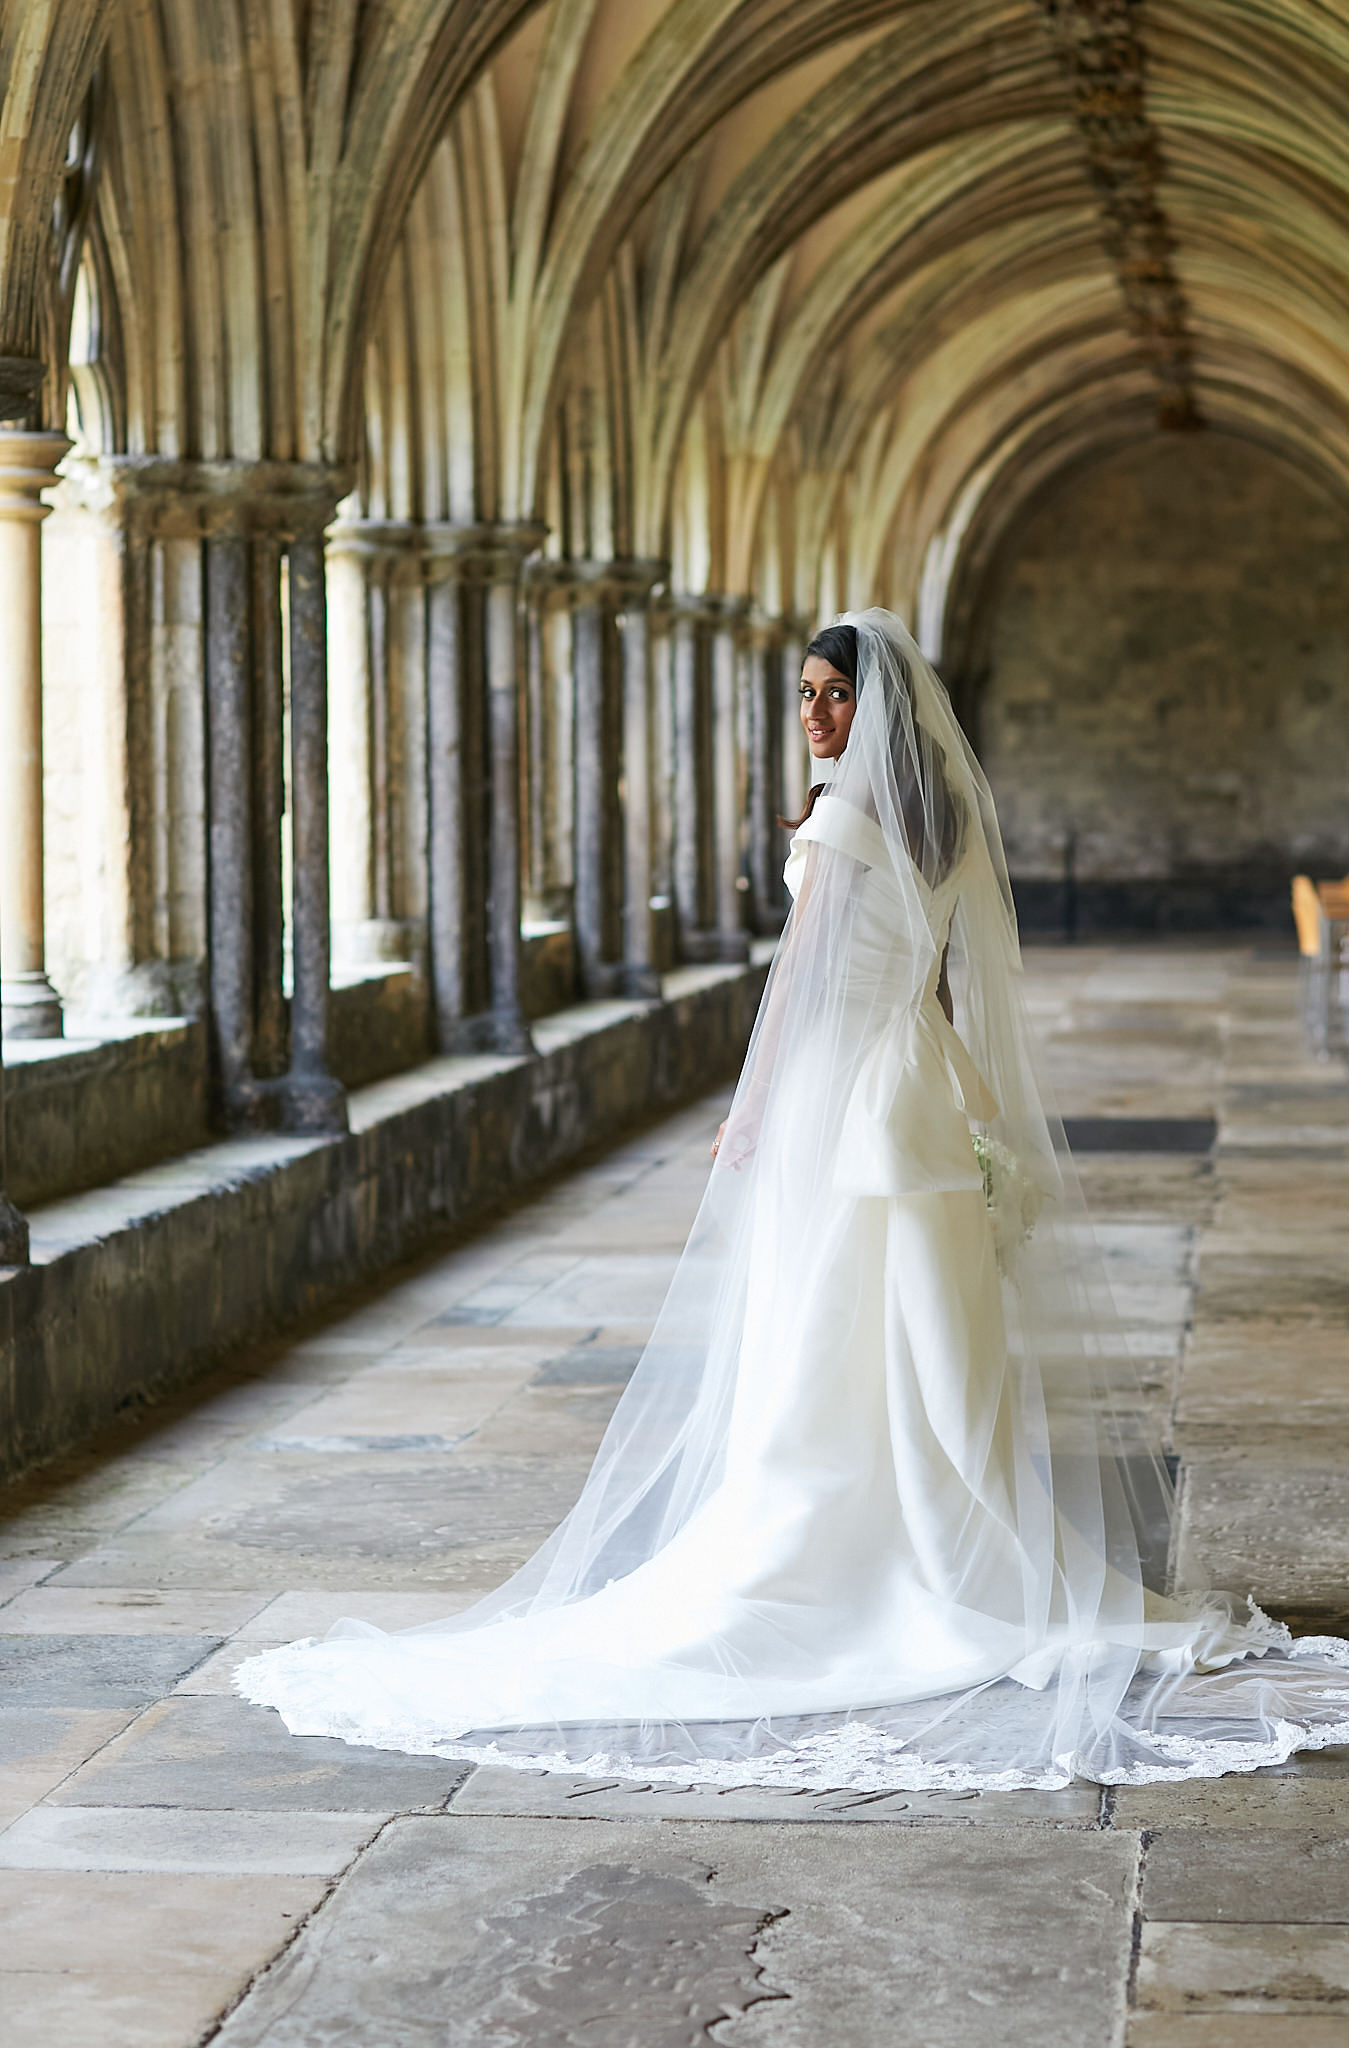 Bride Derrina in cathedral veil at Norwich cathedral